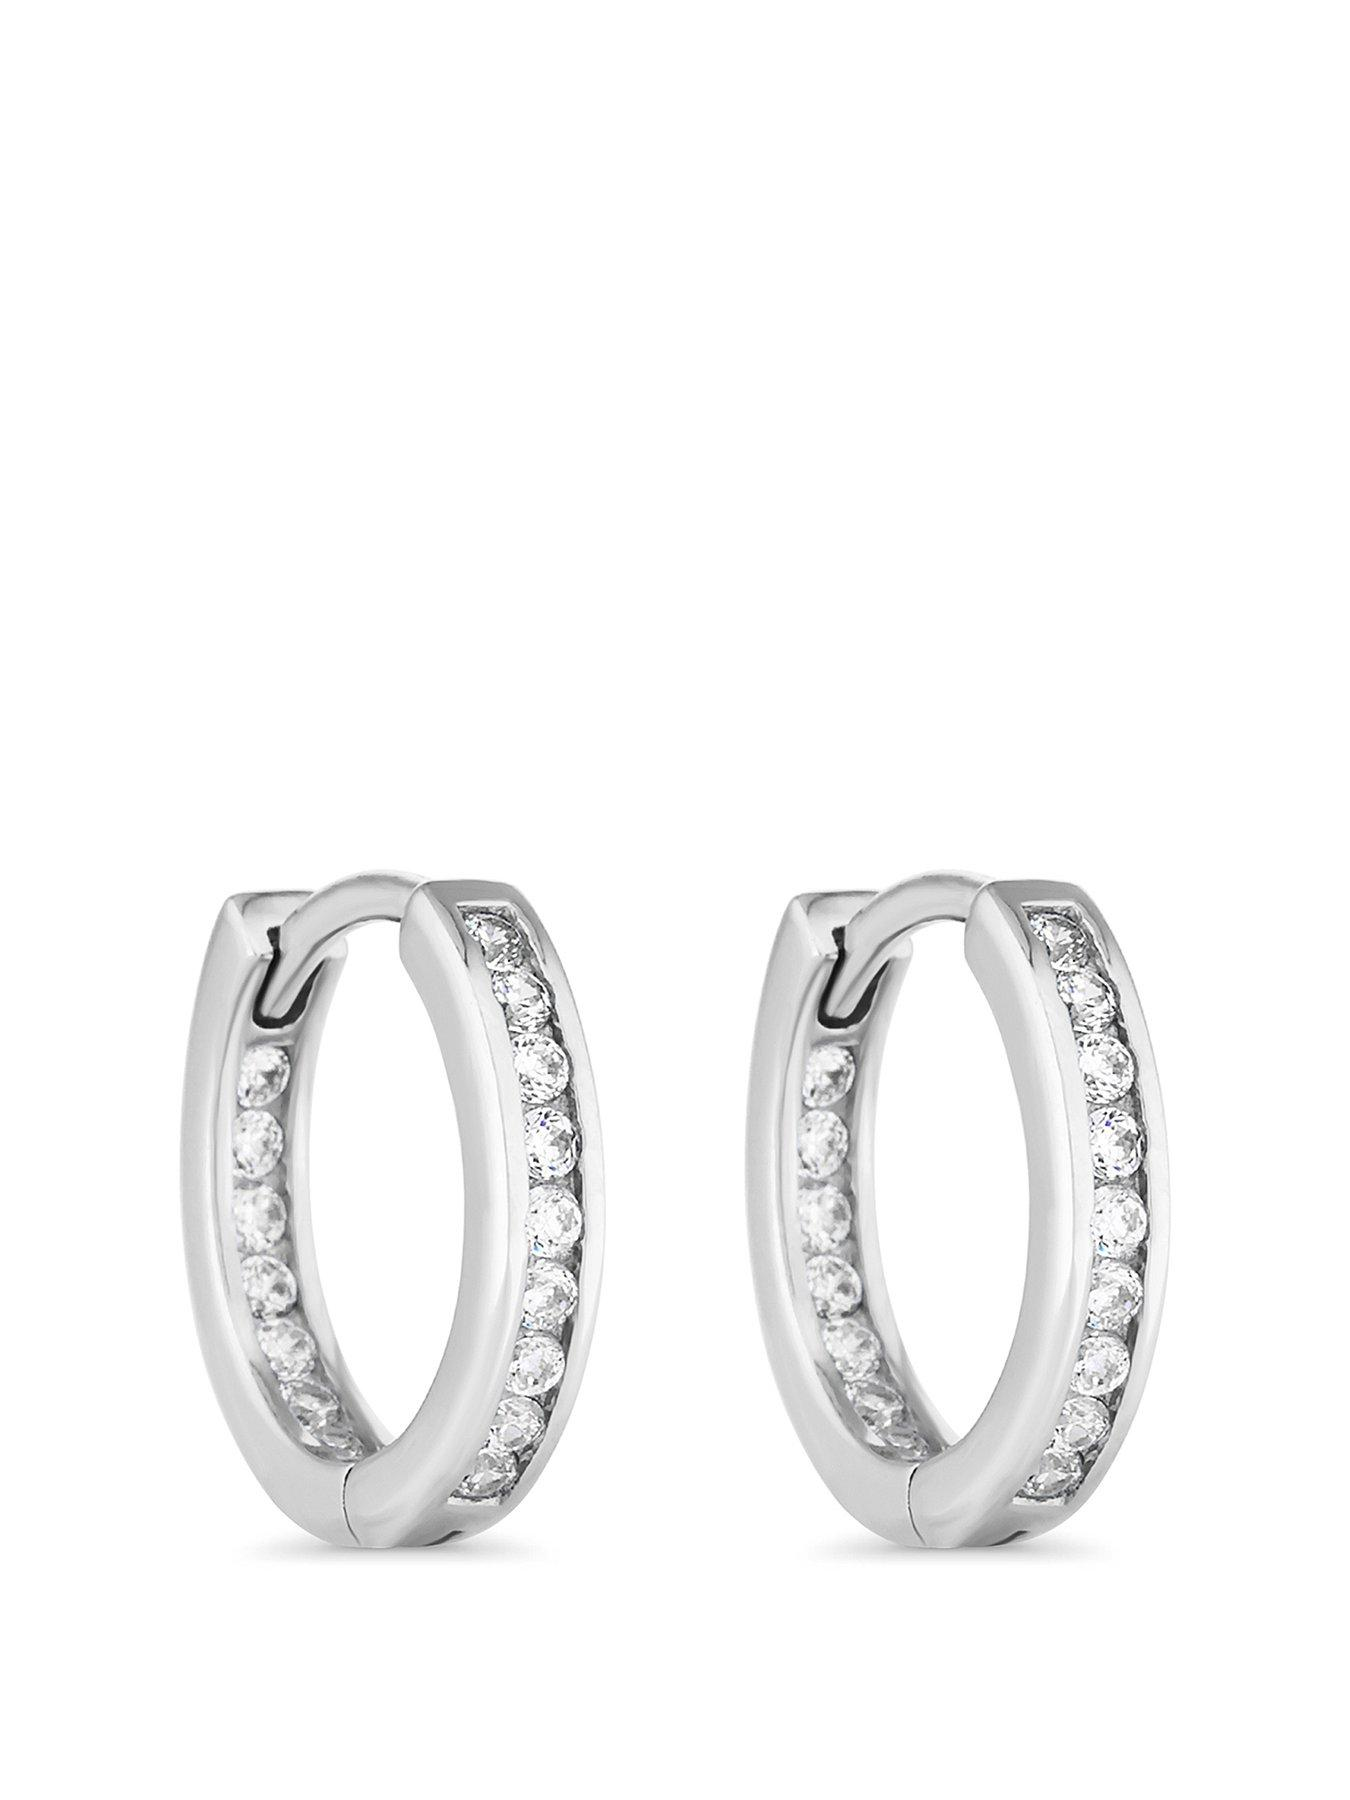 9ct yellow gold ribbed classic huggies hoop earrings HOT ARRIVAL /& ON PROMOTION